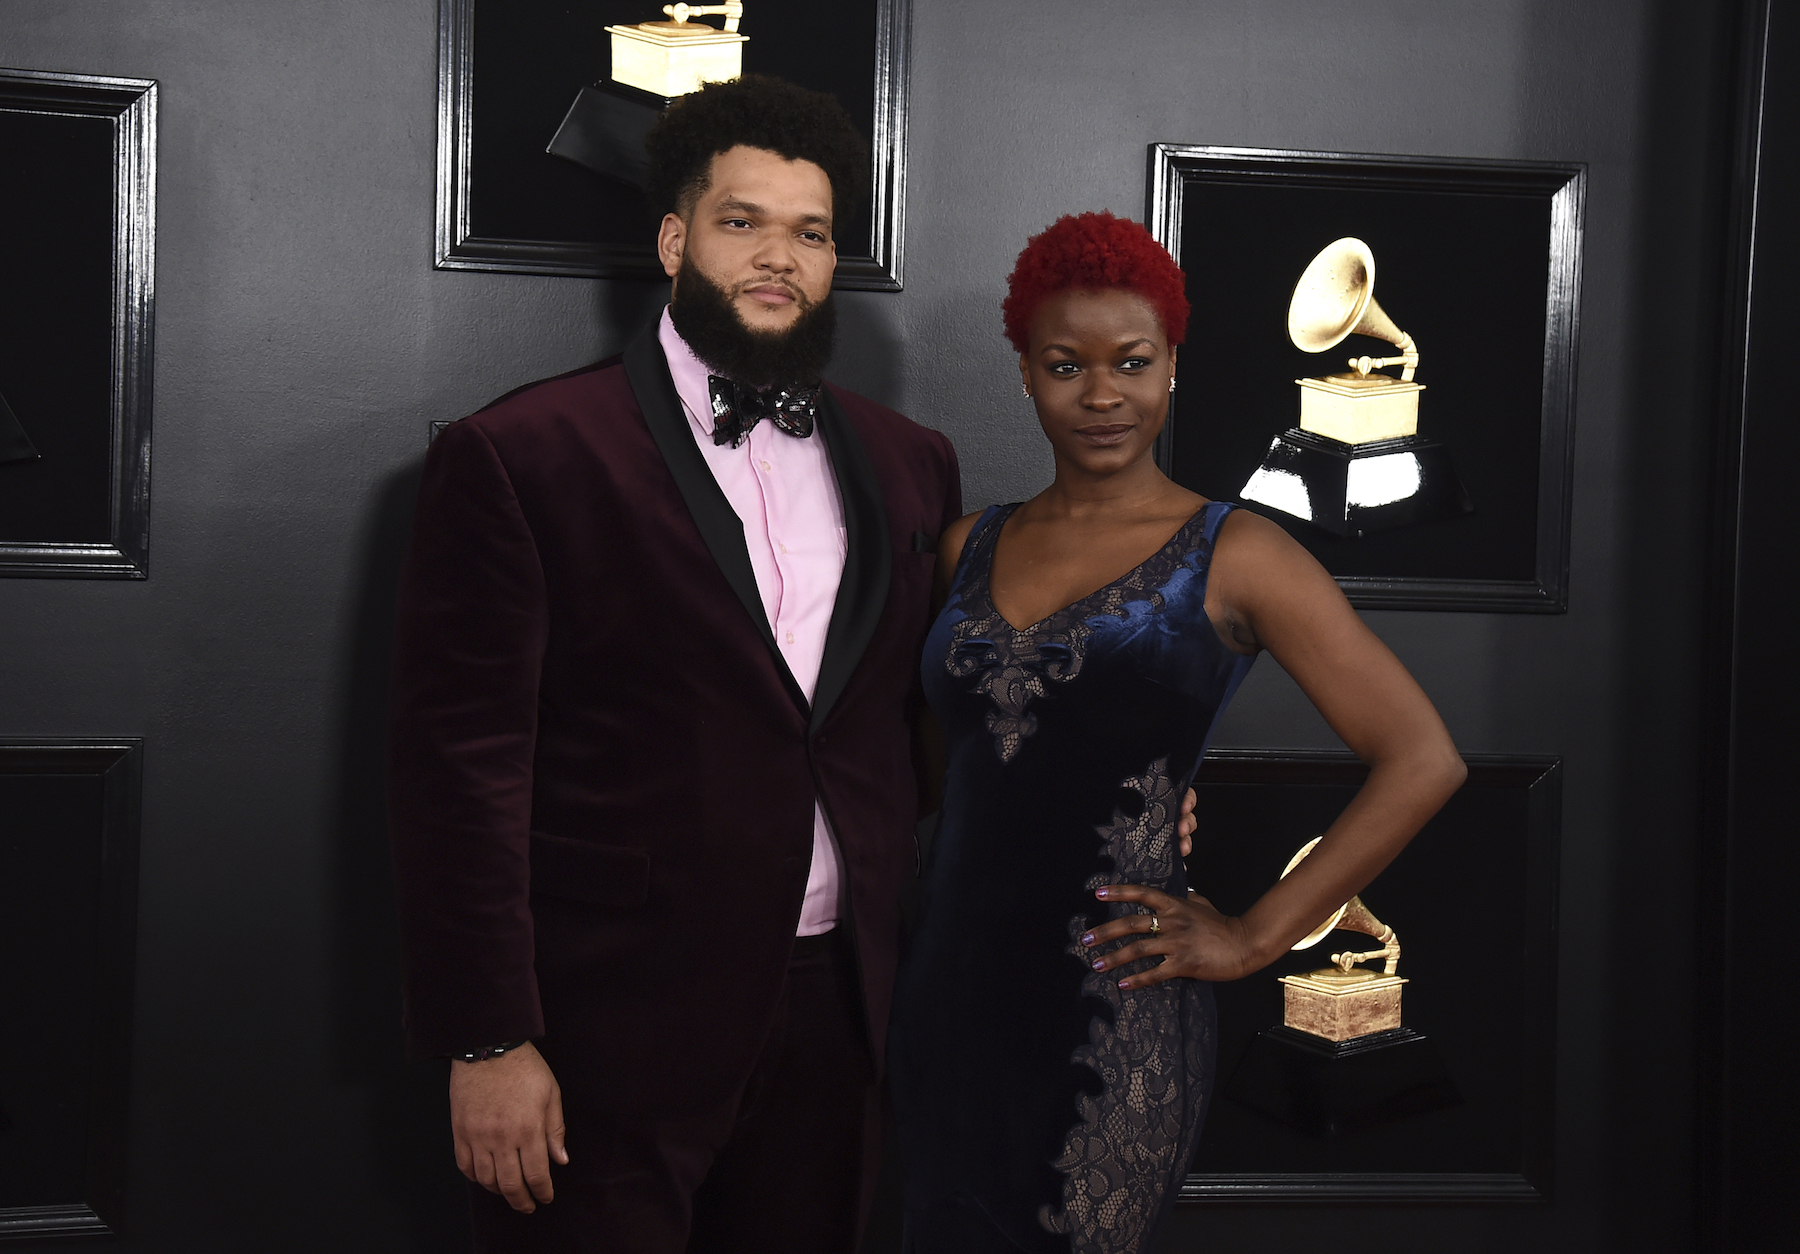 "<div class=""meta image-caption""><div class=""origin-logo origin-image ap""><span>AP</span></div><span class=""caption-text"">Kris Johnson, left, and Lulu Fall arrive at the 61st annual Grammy Awards at the Staples Center on Sunday, Feb. 10, 2019, in Los Angeles. (Jordan Strauss/Invision/AP)</span></div>"